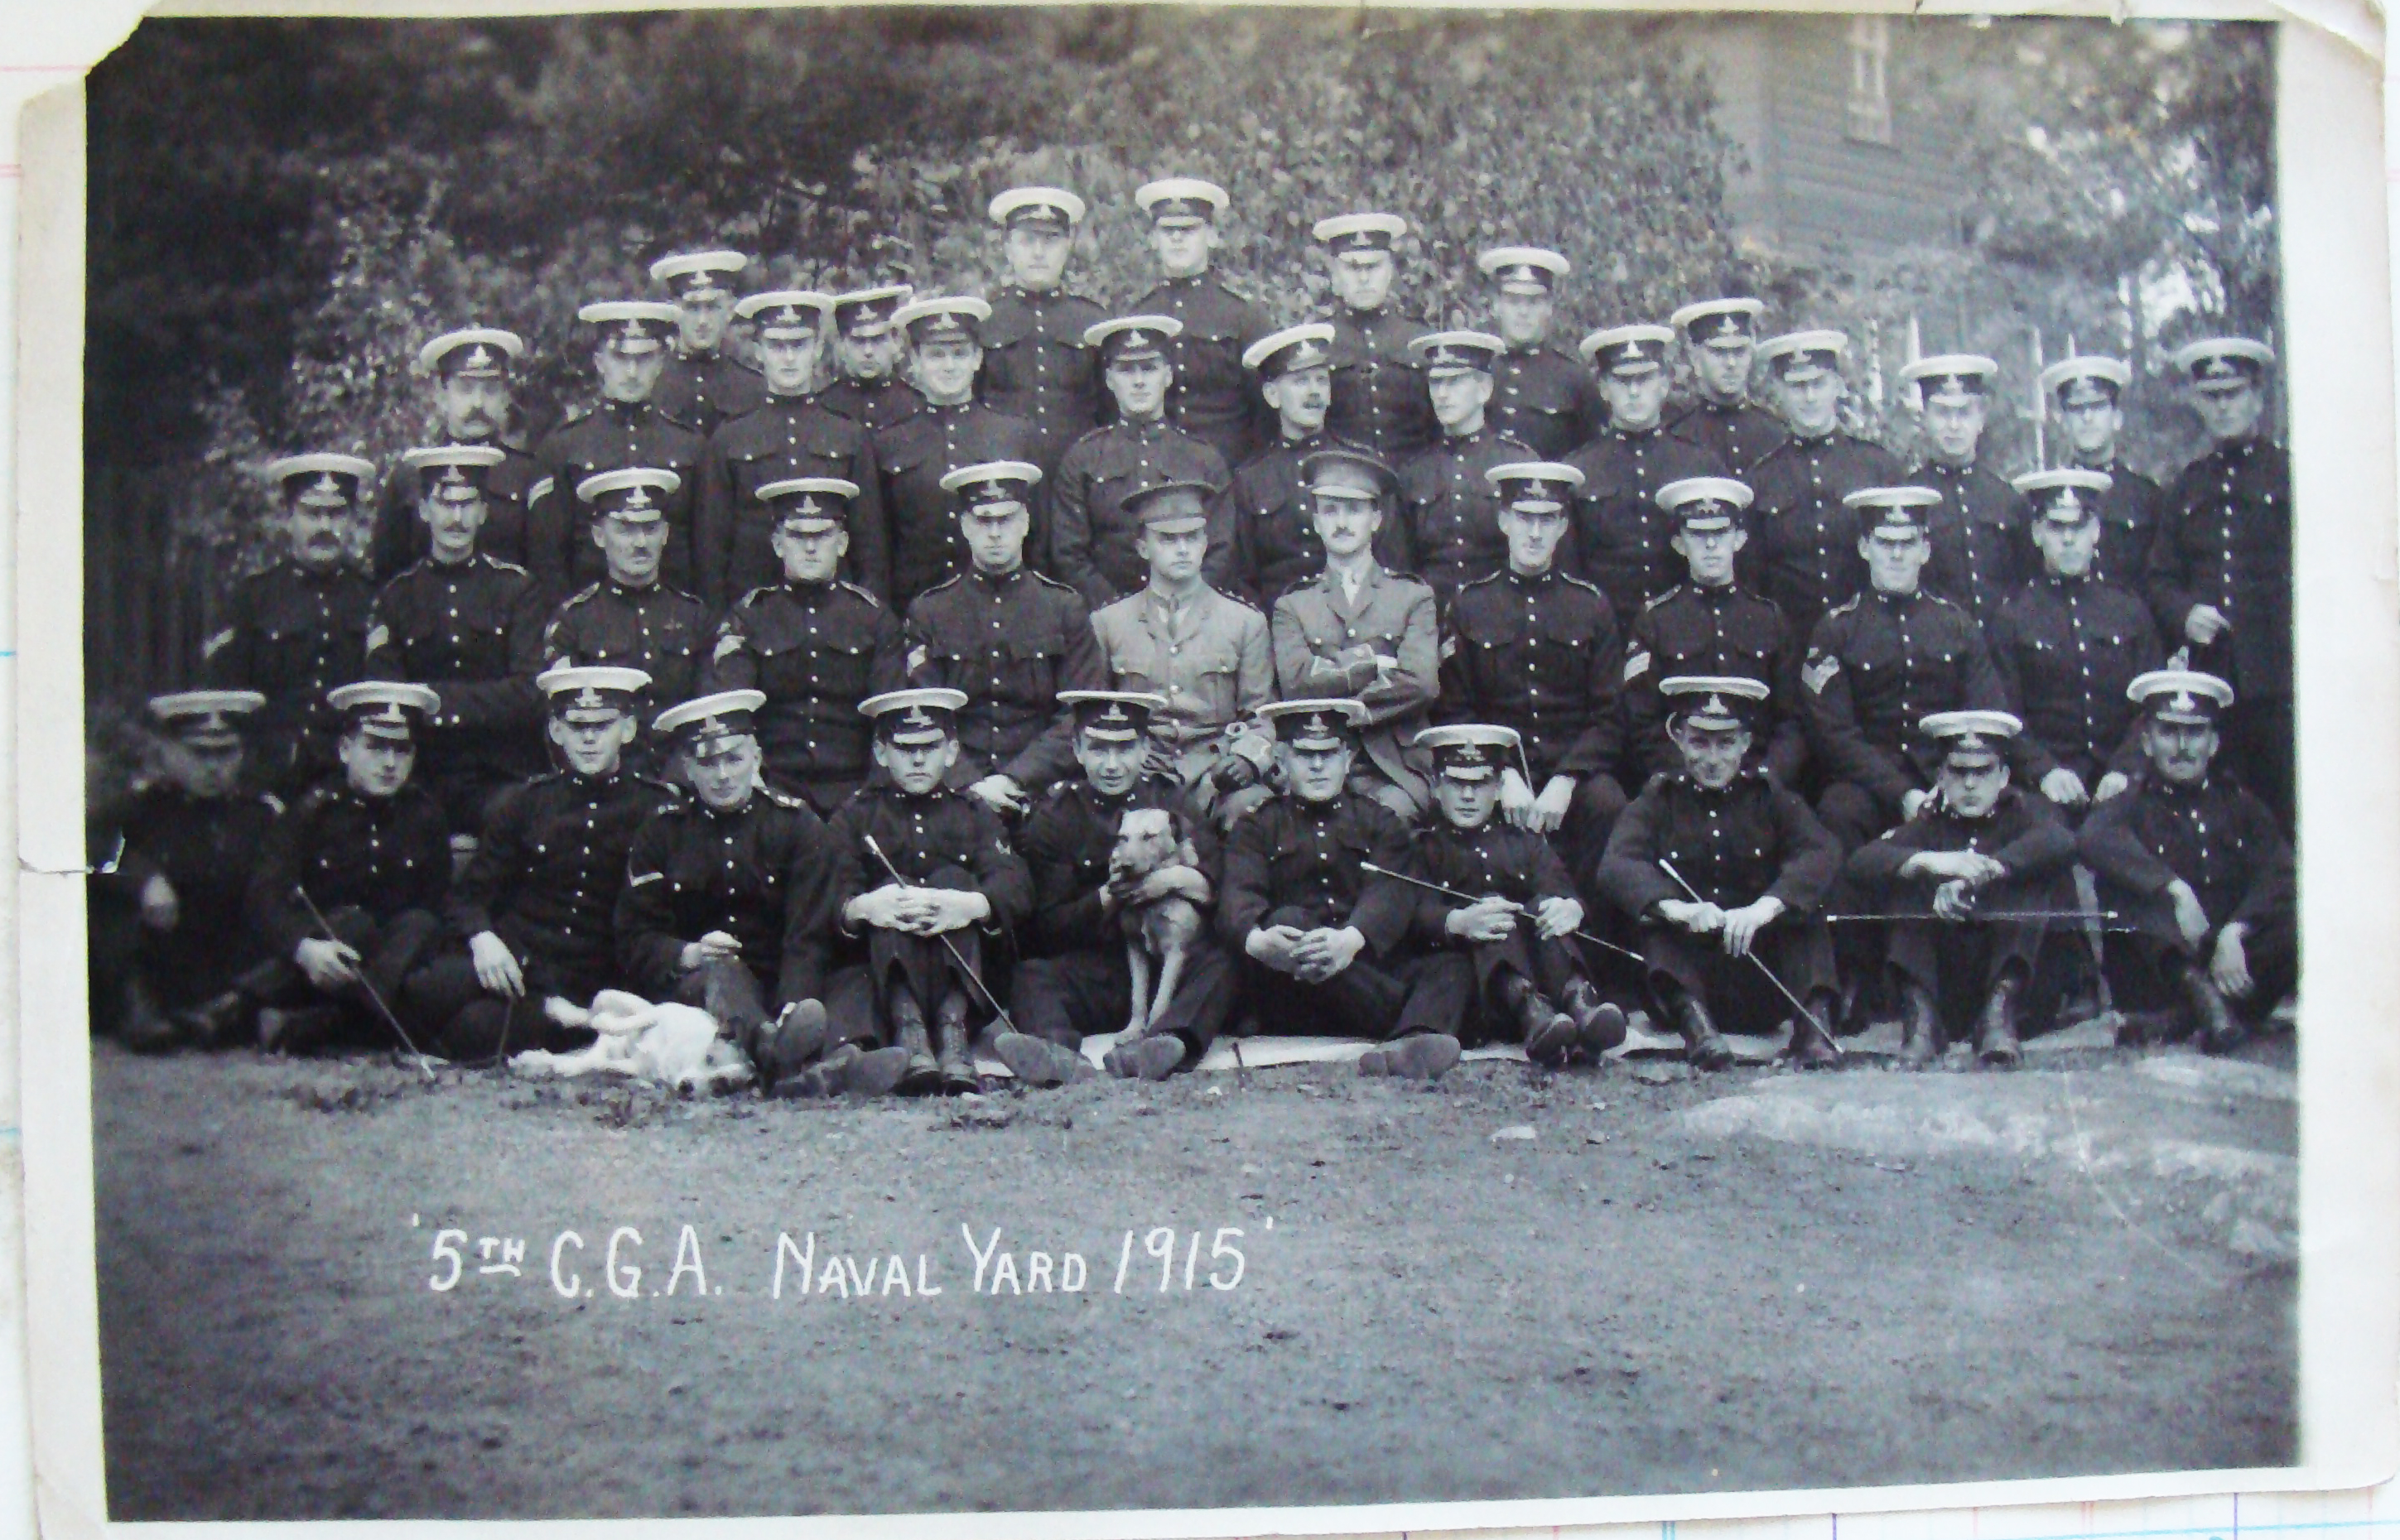 The 5th Regiment in the Naval Yard